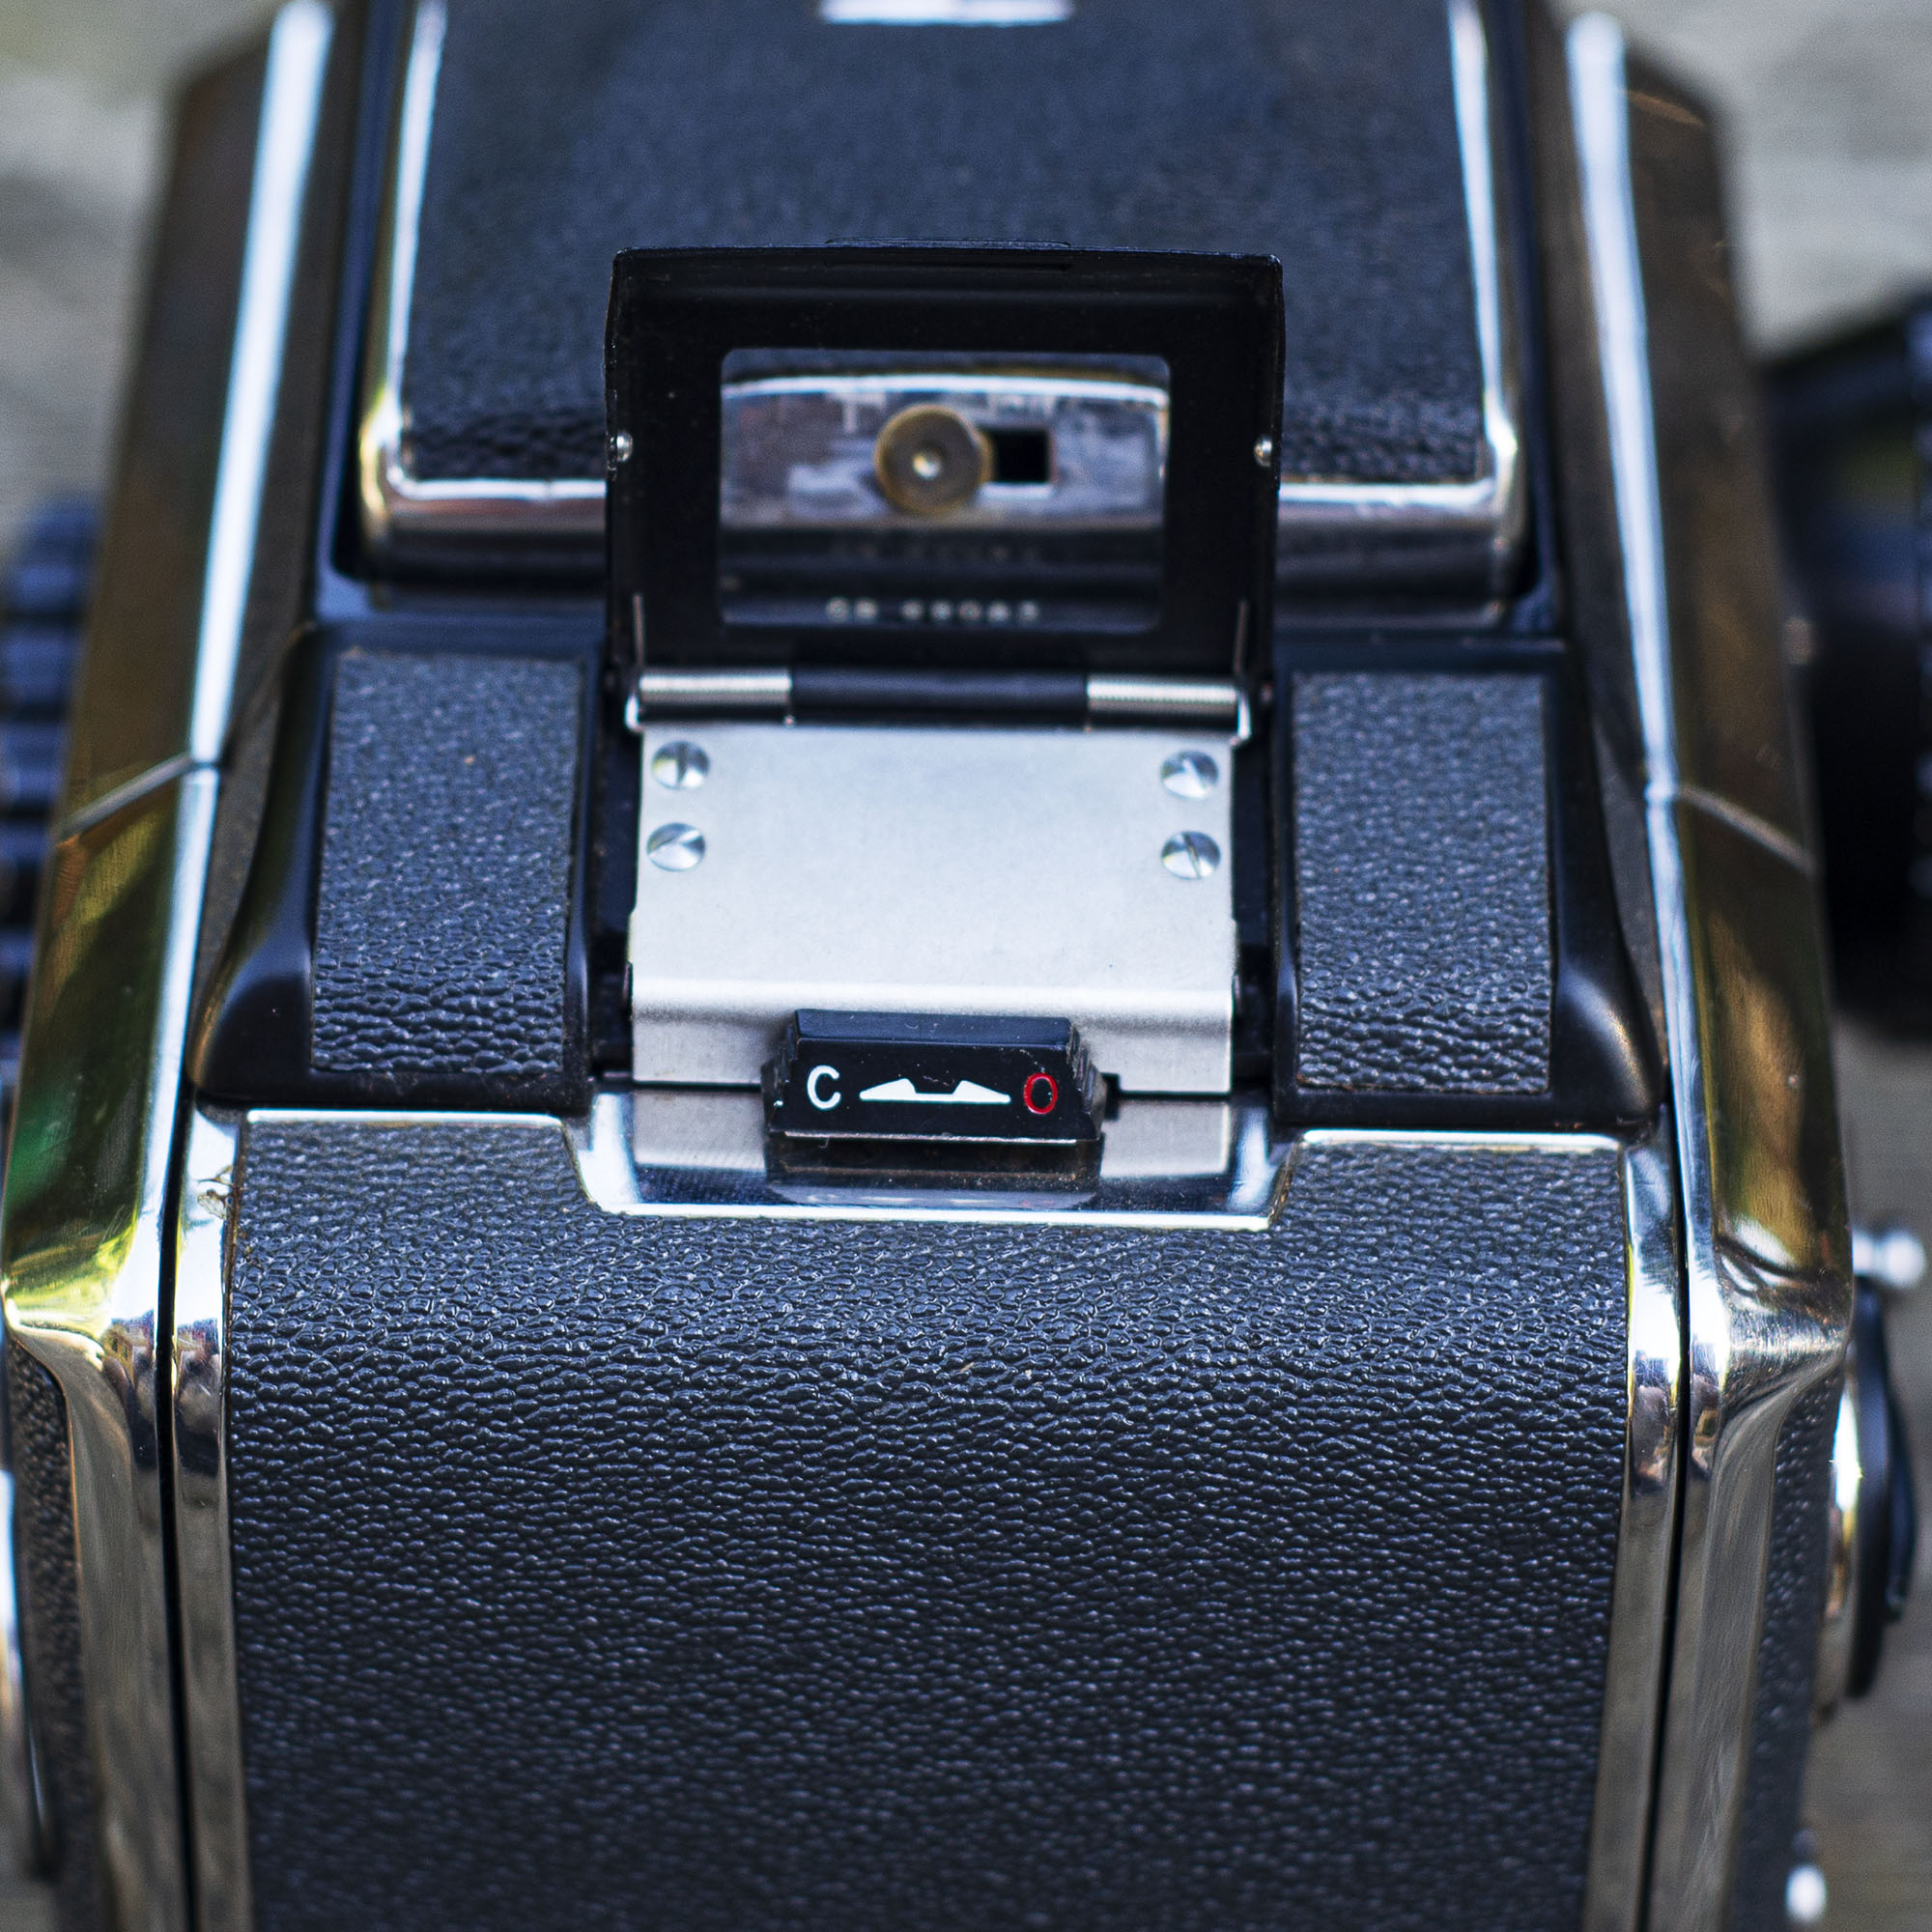 Bronica S2 film tab and back latch detail